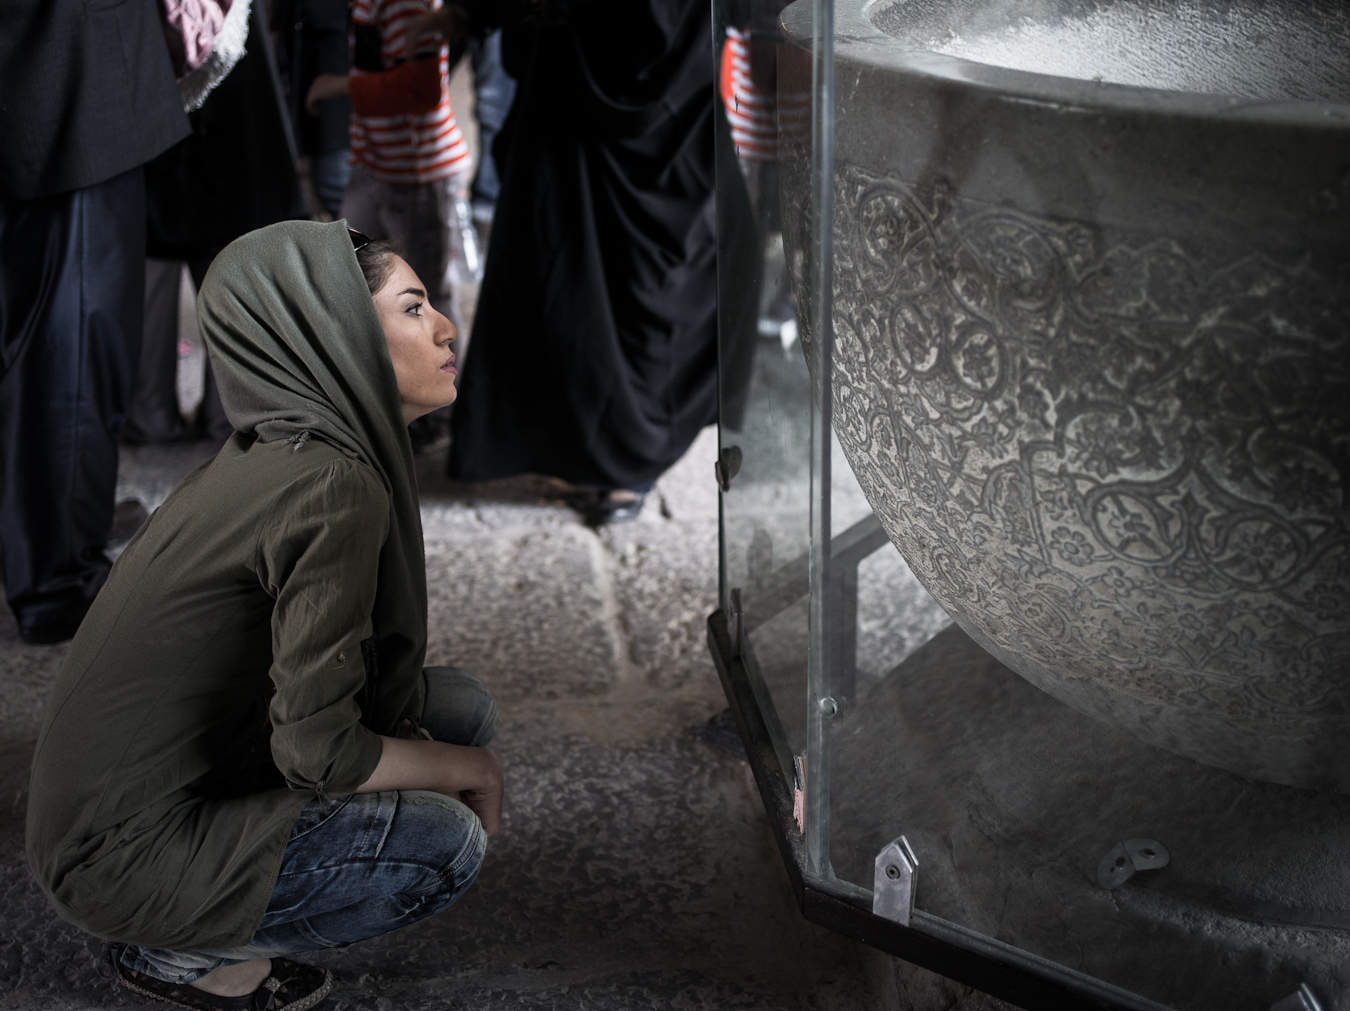 Photograph Iranianlady admiring stone bowl, Iran by Chiaro Scurist on 500px